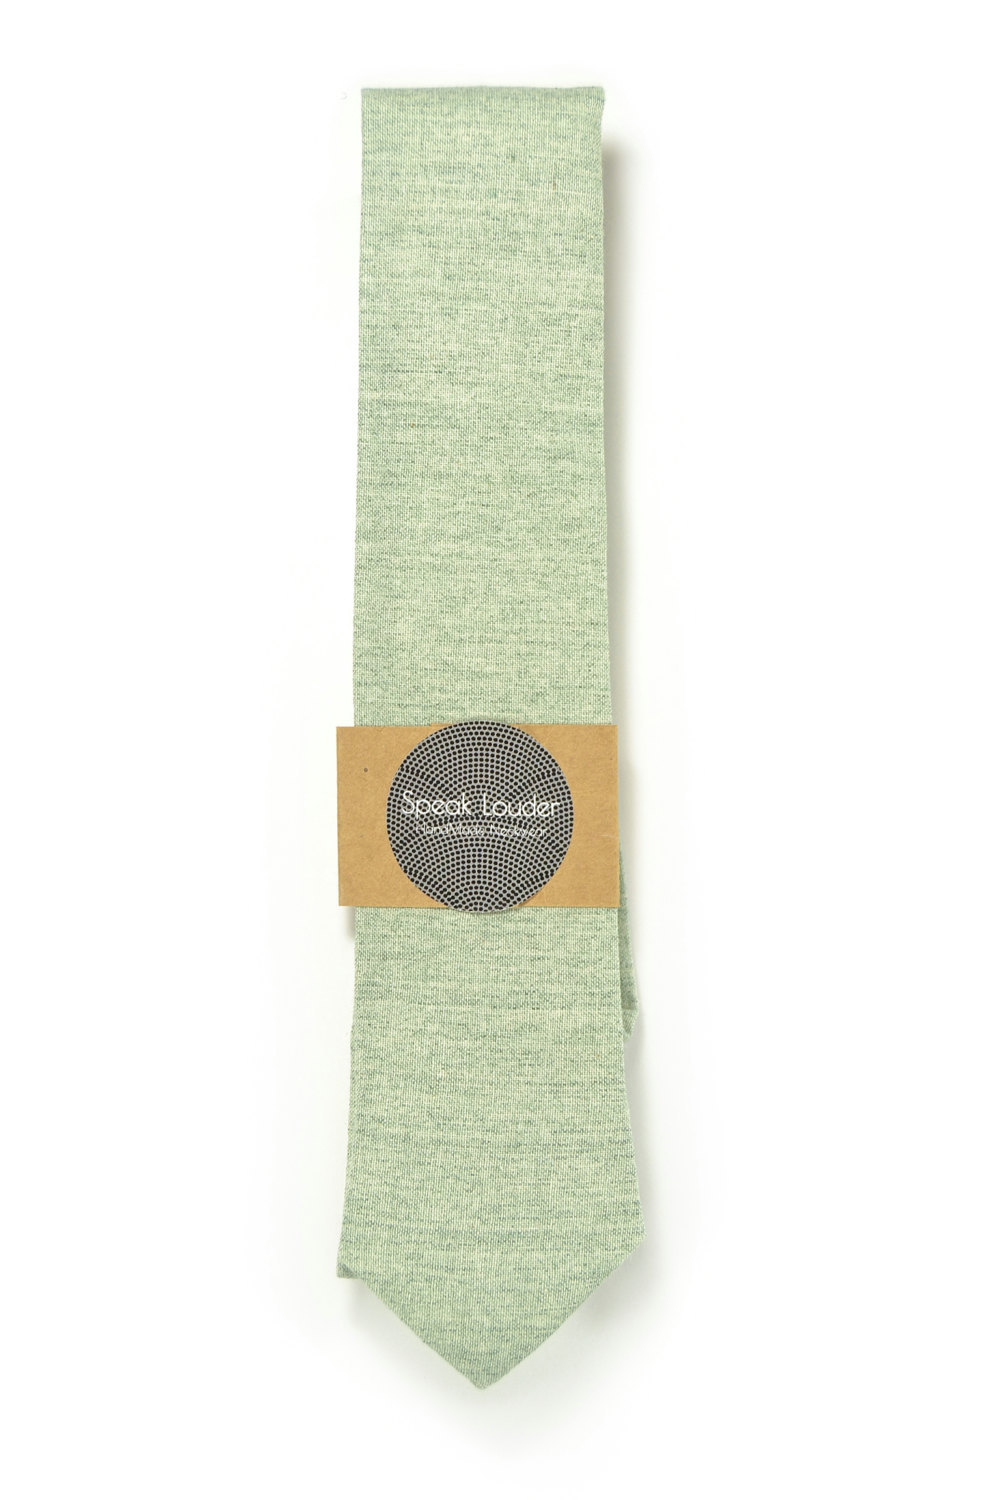 Wedding Mens Tie Skinny Necktie blush green- Laid-Back necktie- Green Japanese f